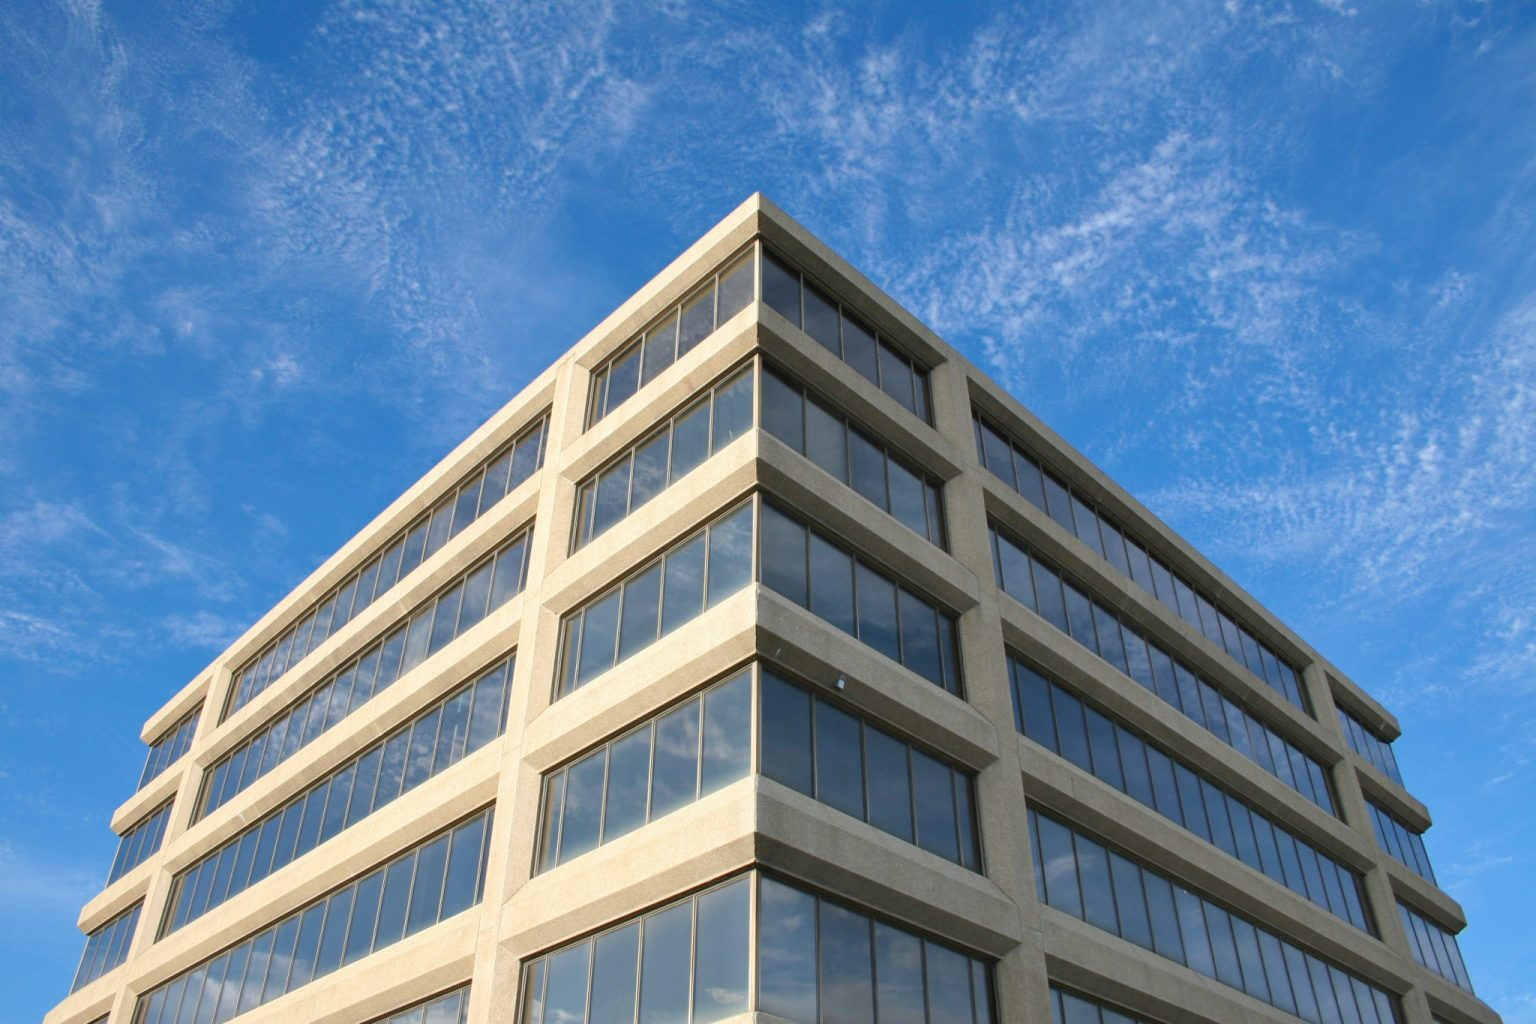 Reduce Operating Costs and Adopt Green Building Tech with Window Film - Commercial Window Tinting in Iowa City and the Quad Cities areas of Iowa